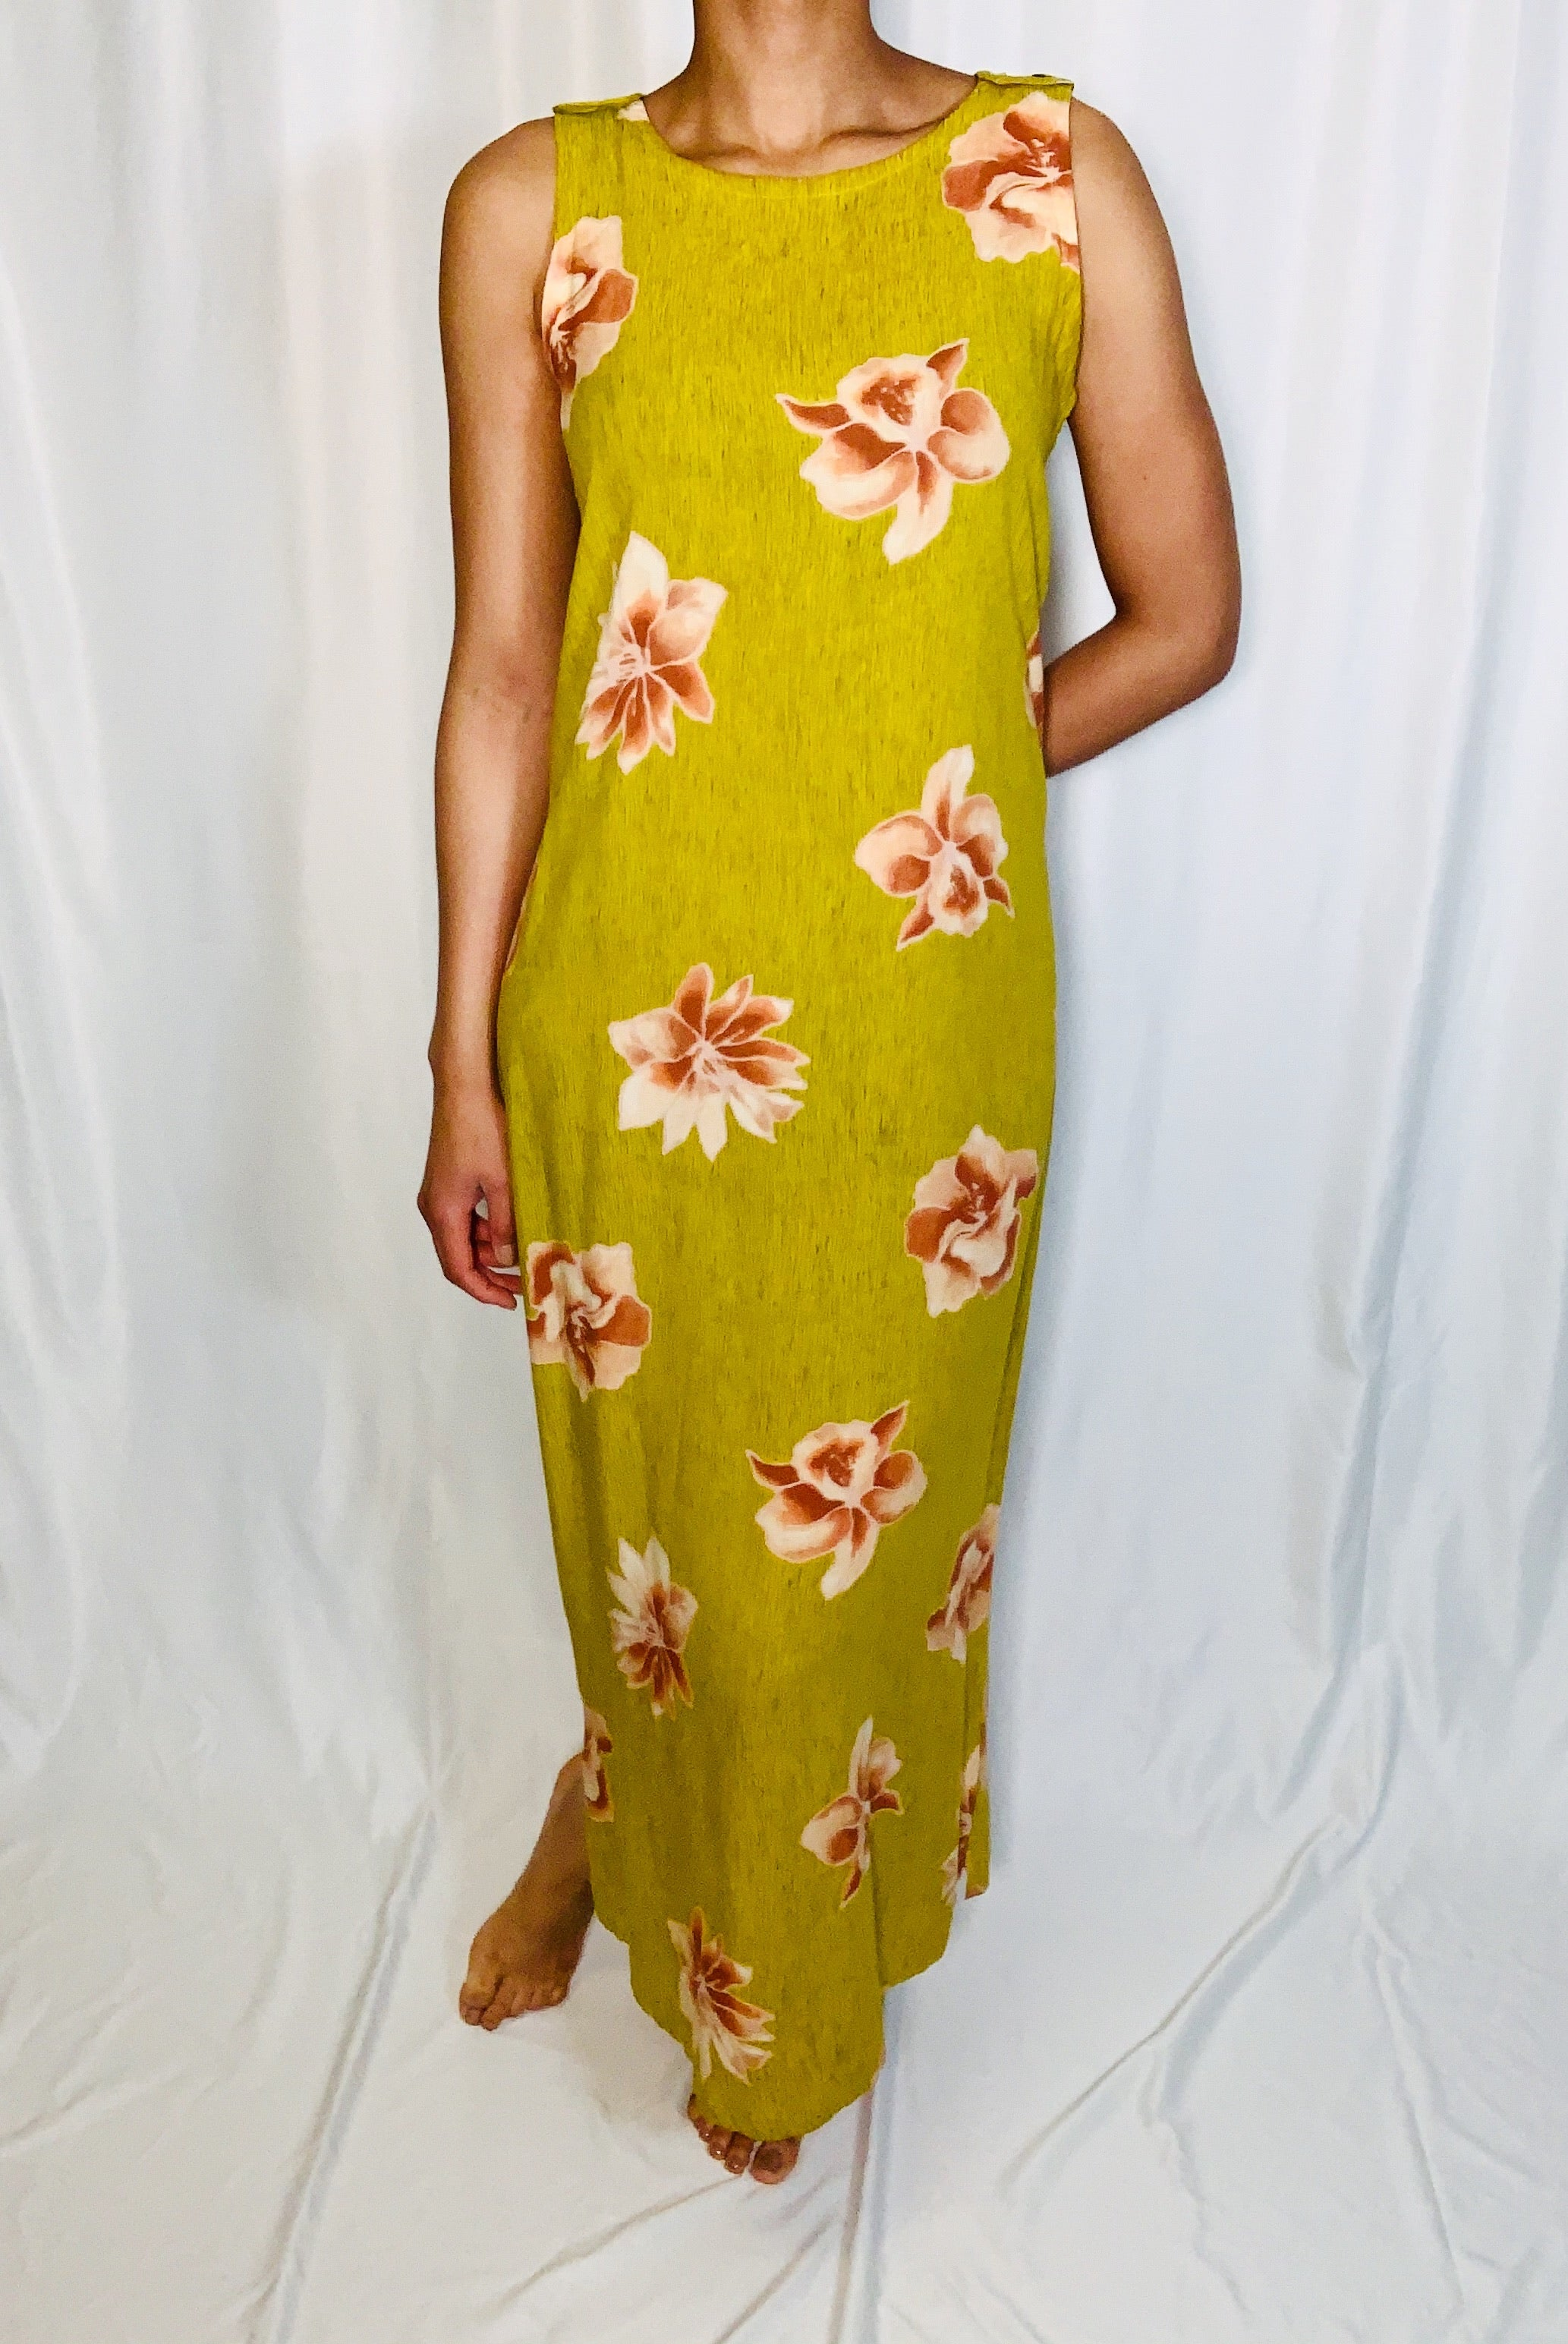 Vintage Dressing Clio Maxi Dress (size medium)